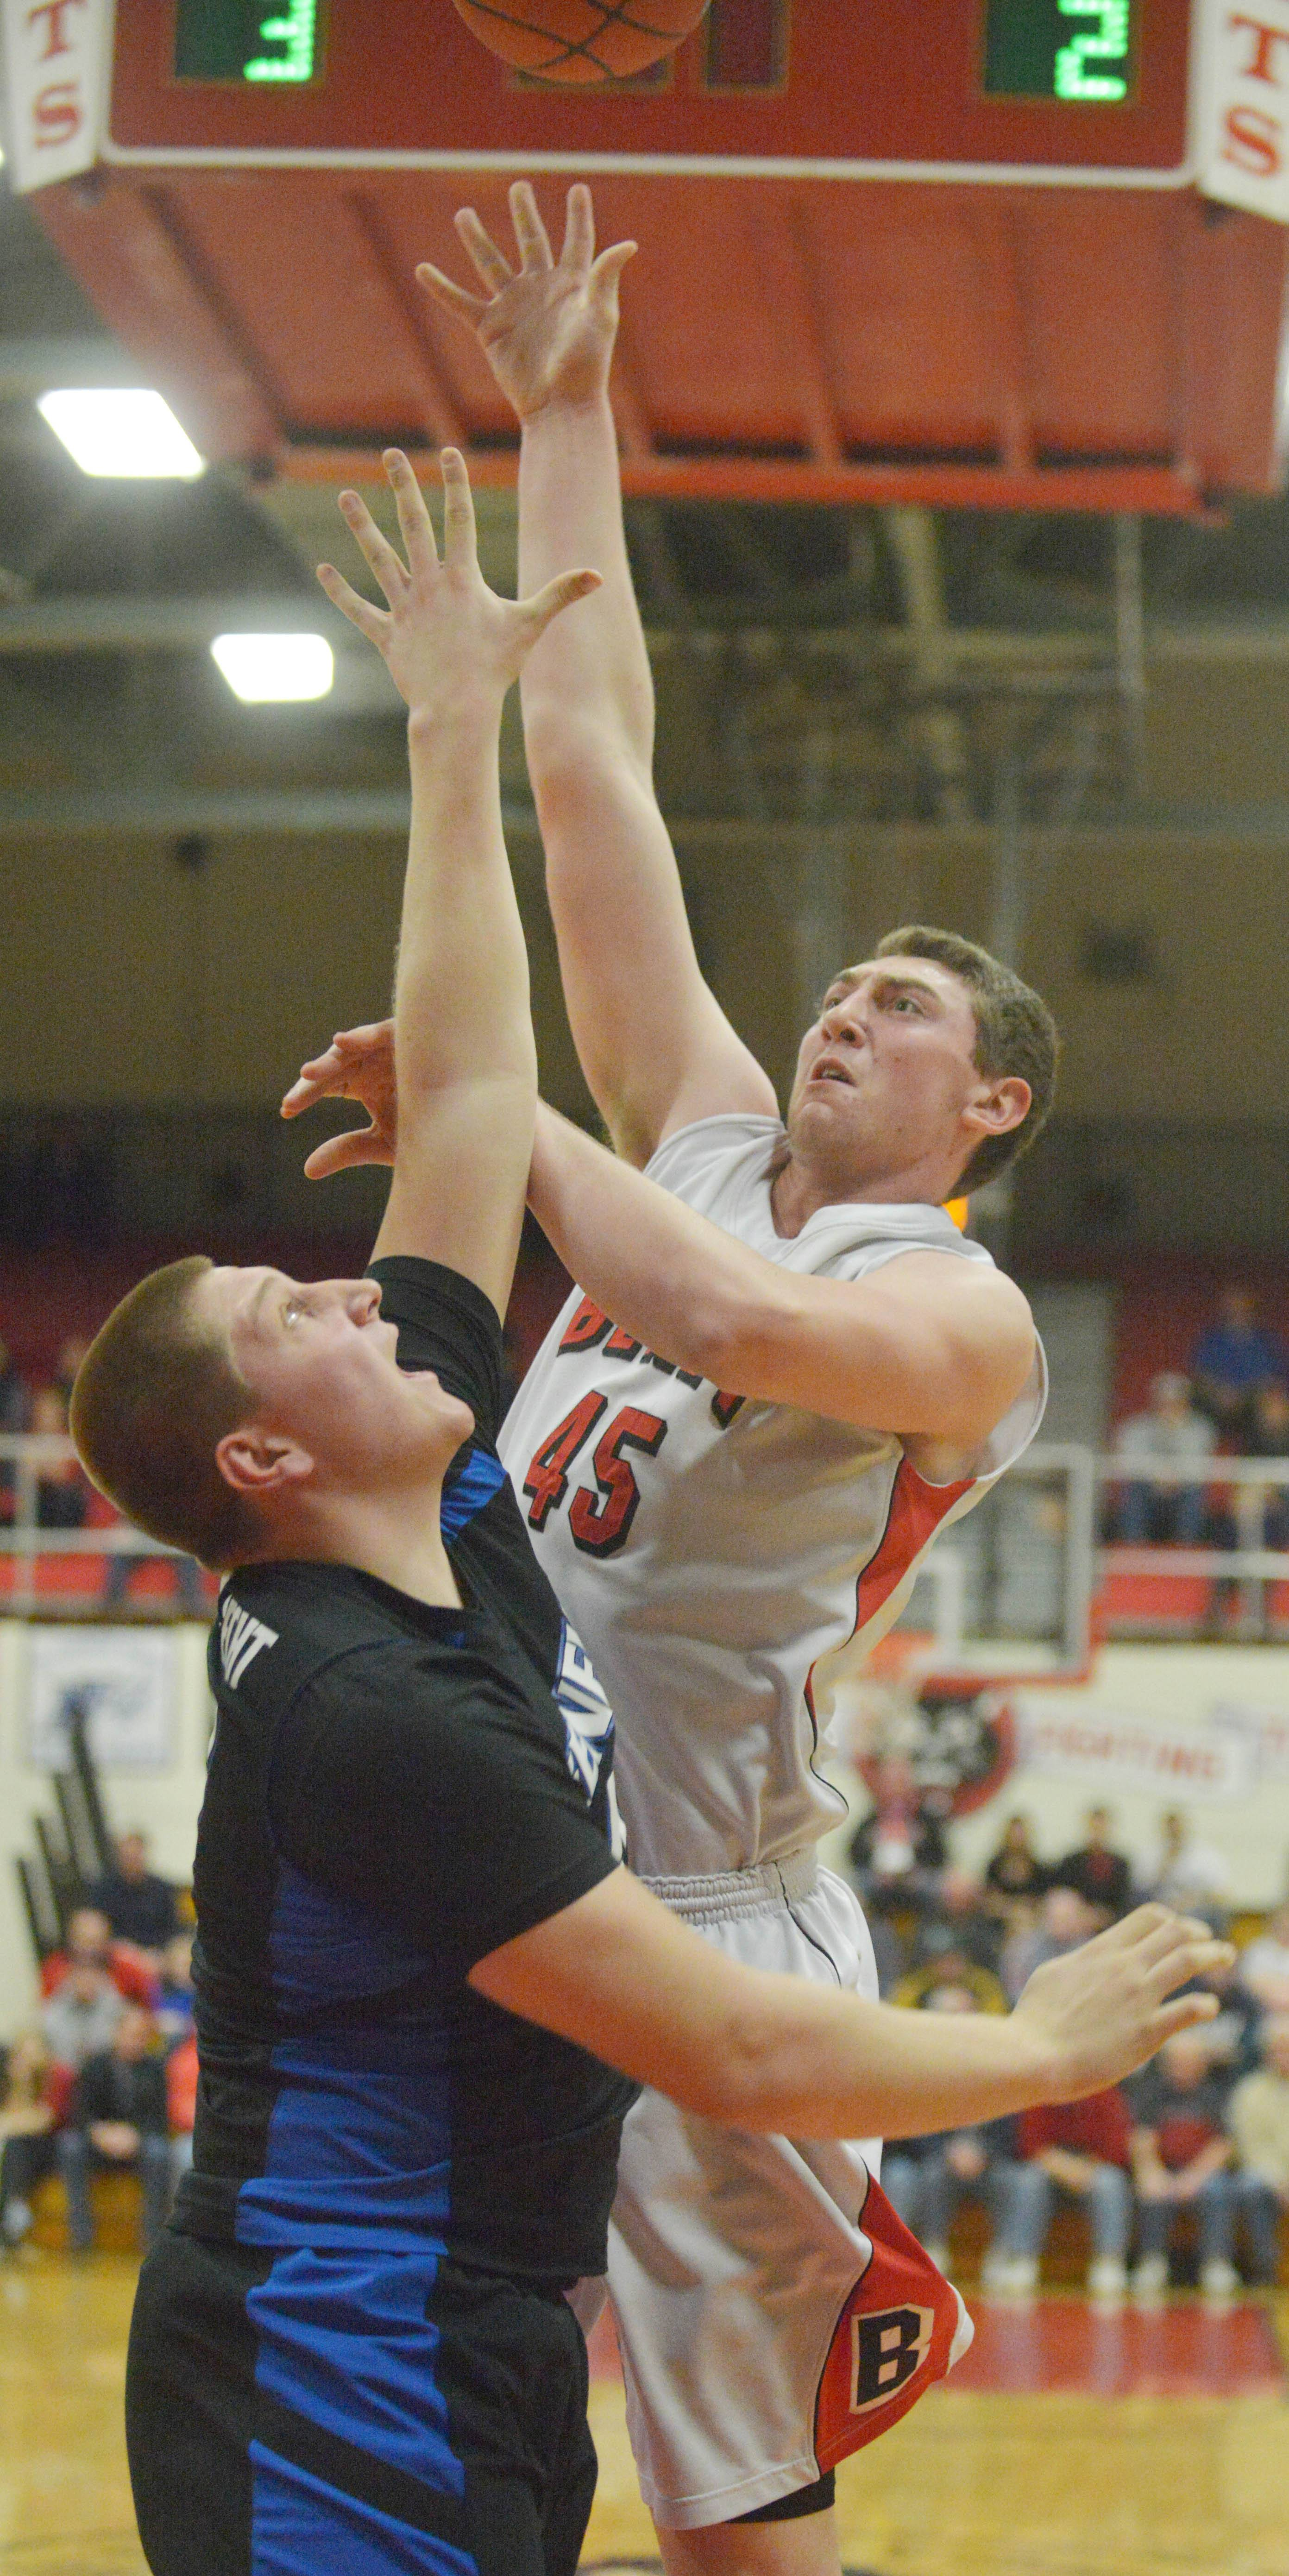 (40) Loudon Vollbrecht of Geneva attempts to block a shot form Sean O'Mara of Benet during the Benet vs. Geneva Class 4A East Aurora boys basketball sectional final Friday.